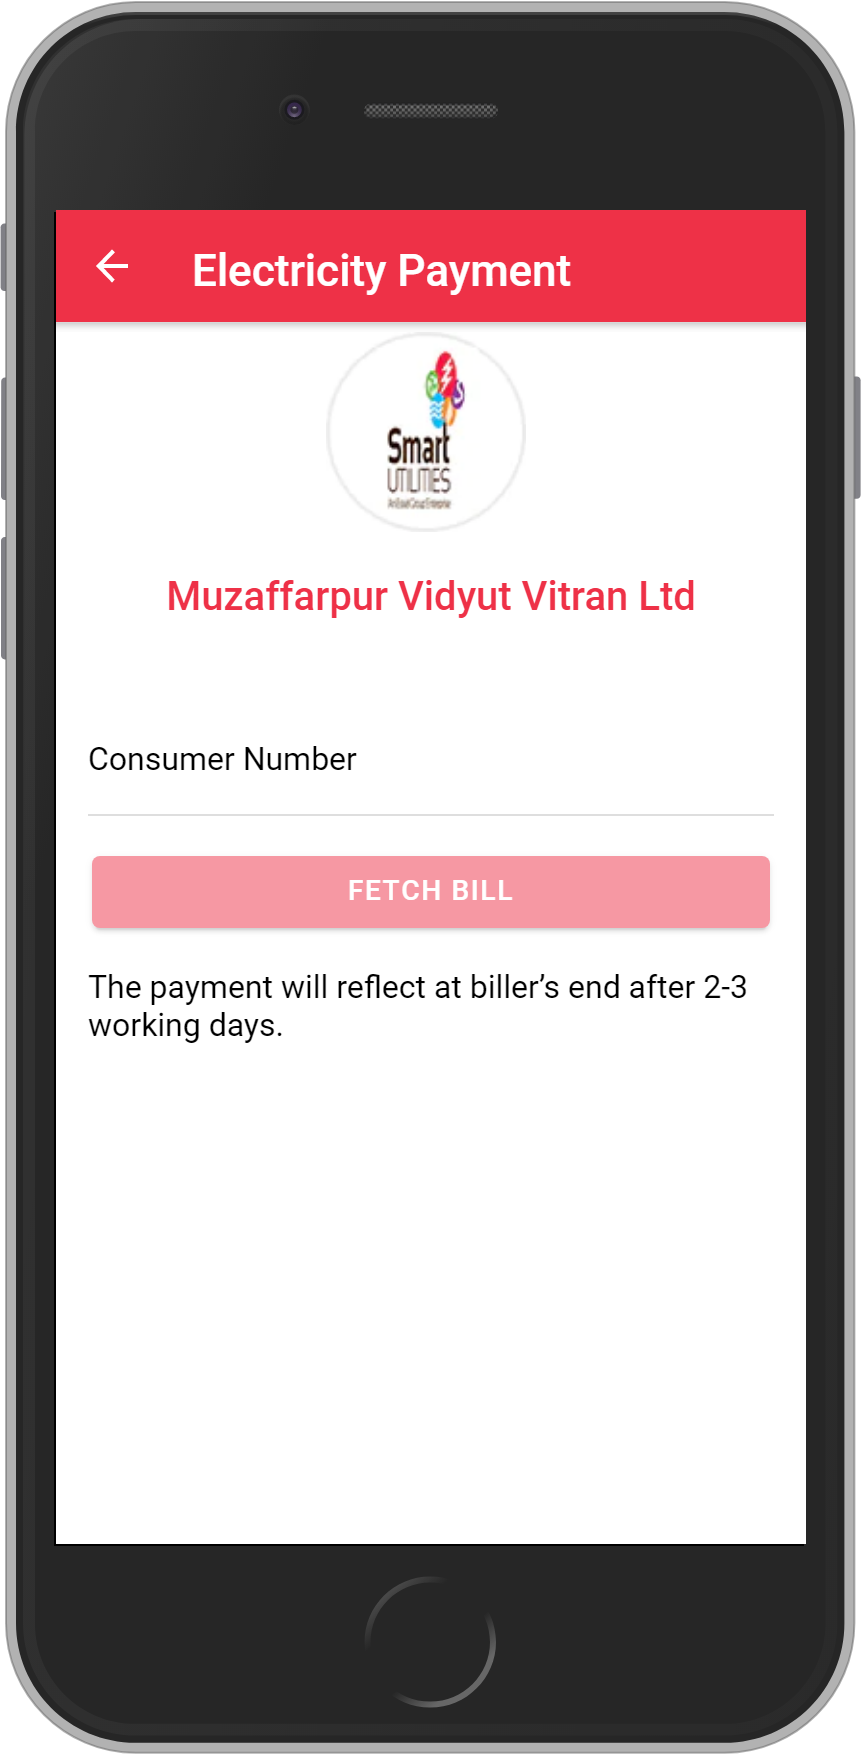 Get UNLIMITED <b>0.1%</b> CASHBACK on Muzaffarpur Vidyut Vitran Ltd Bill Payment.